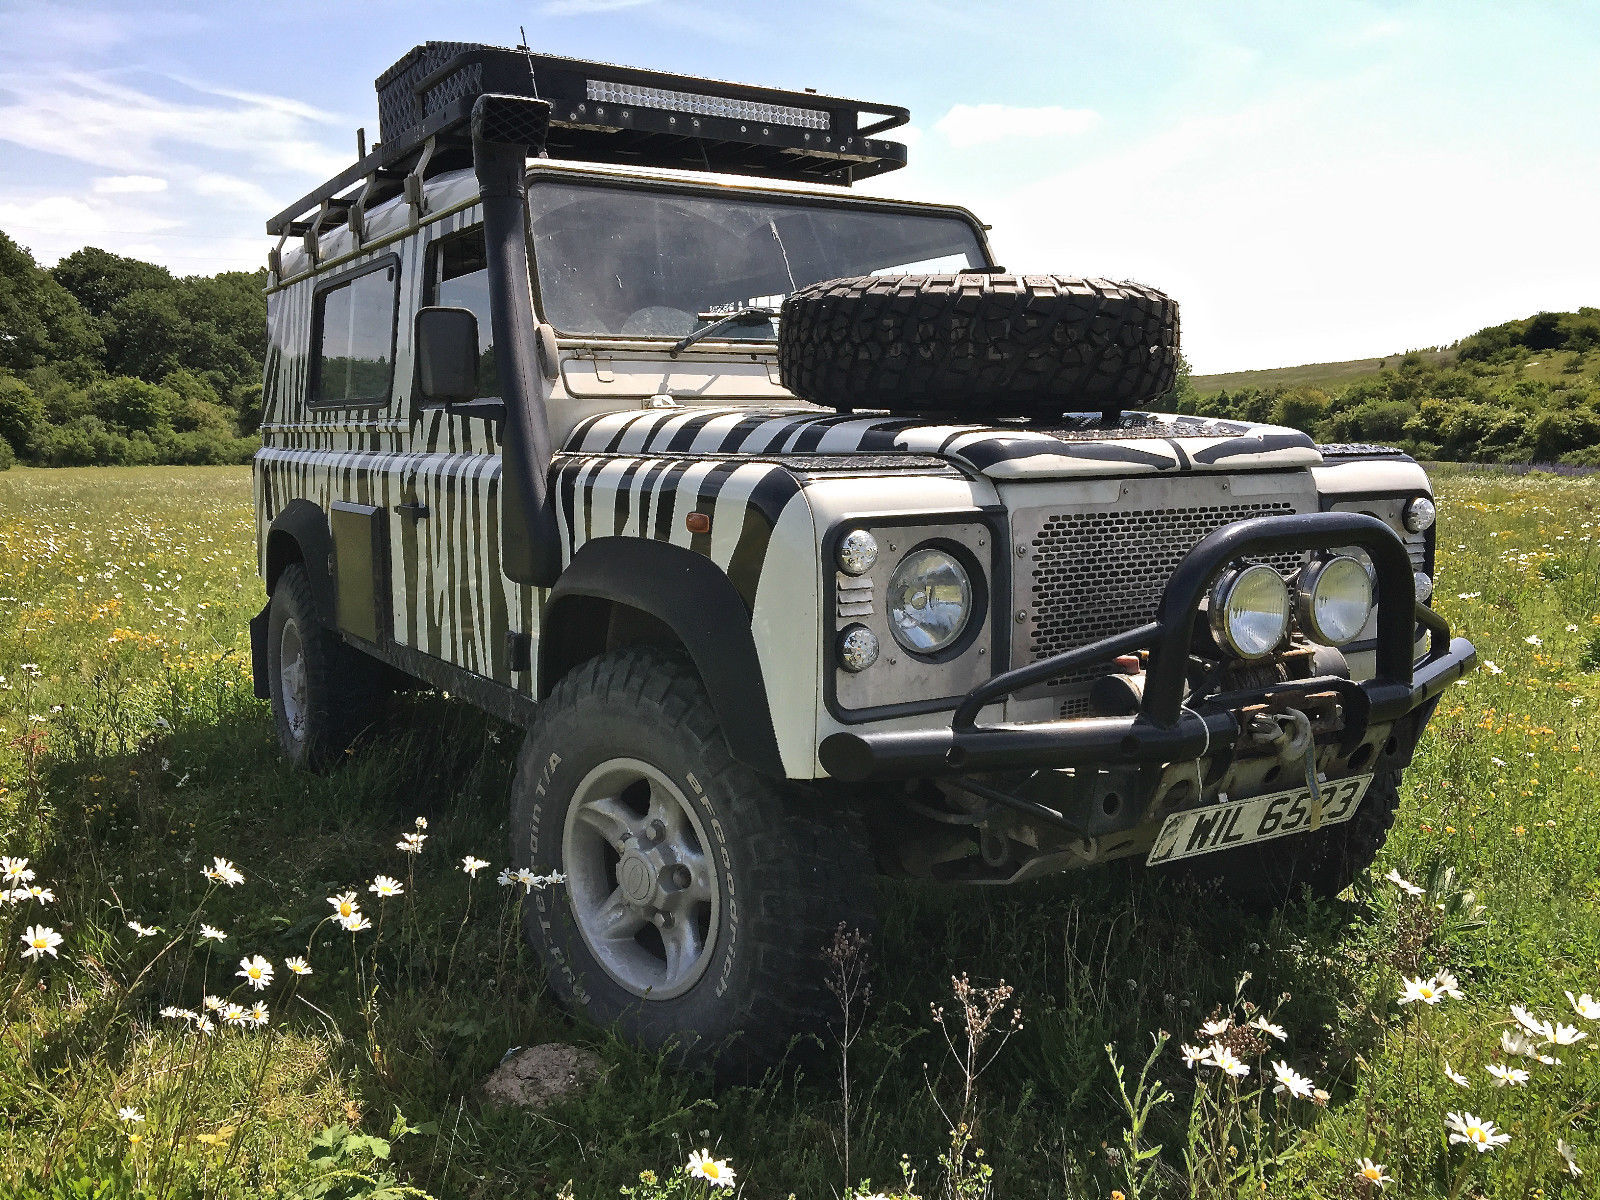 SOLD – Land Rover 110 Td5 – Extensively Prepped – UK